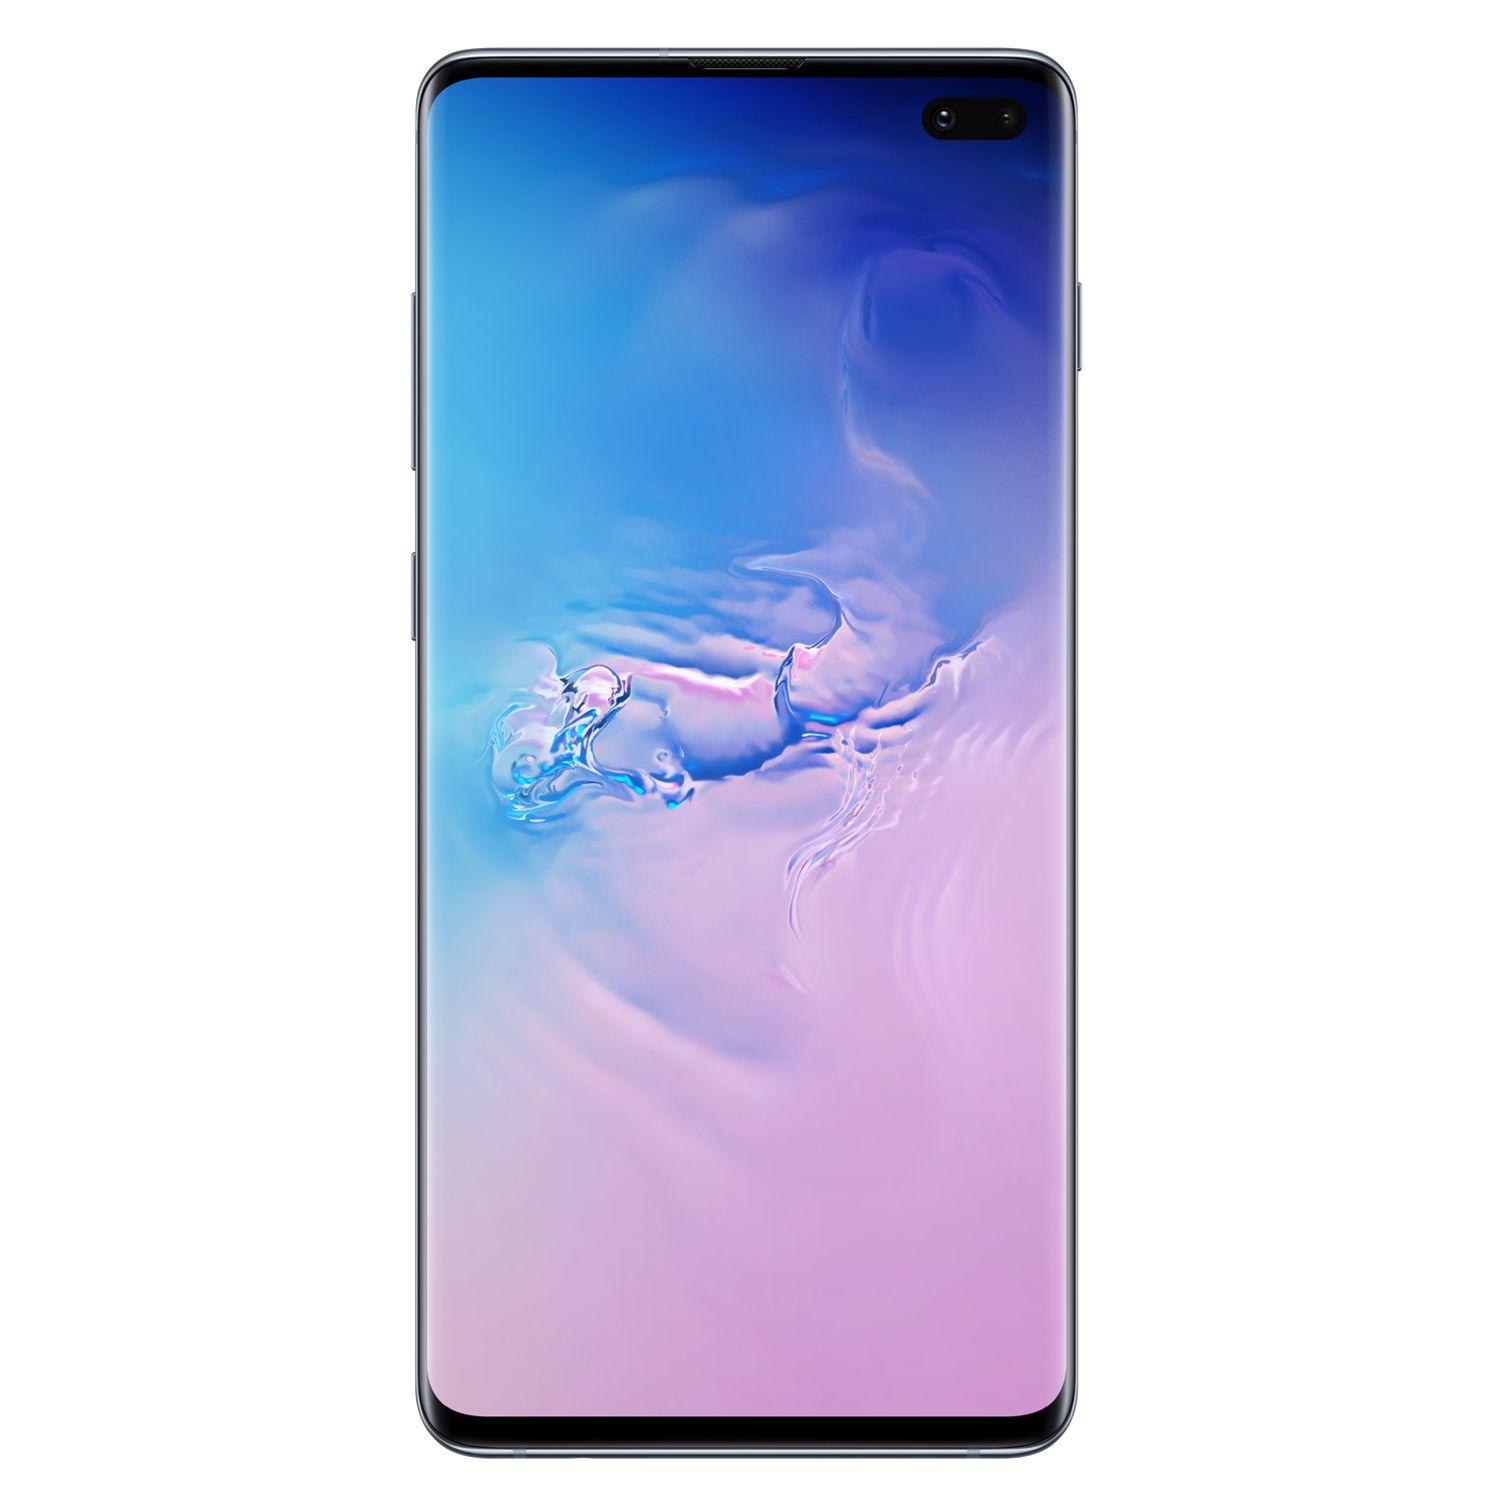 "<p><strong>Samsung</strong></p><p>amazon.com</p><p><strong>$899.99</strong></p><p><a href=""http://www.amazon.com/dp/B07N4M7F9Q/?tag=syn-yahoo-20&ascsubtag=%5Bartid%7C2089.g.158%5Bsrc%7Cyahoo-us"" rel=""nofollow noopener"" target=""_blank"" data-ylk=""slk:Shop Now"" class=""link rapid-noclick-resp"">Shop Now</a></p><p>The Samsung Galaxy S10+ has a striking design, an incredibly powerful chipset, a captivating Infinity Super AMOLED display with a fingerprint sensor underneath it, a total of five excellent built-in cameras (three rear-facing and two front-facing ones), and great battery life. It received rave reviews from the likes of <a href=""https://www.cnet.com/reviews/samsung-galaxy-s10-plus-review/"" rel=""nofollow noopener"" target=""_blank"" data-ylk=""slk:CNET"" class=""link rapid-noclick-resp"">CNET</a>, <a href=""https://www.engadget.com/2019/03/04/samsung-galaxy-s10-review-with-camera-samples-fingerprint/"" rel=""nofollow noopener"" target=""_blank"" data-ylk=""slk:Engadget"" class=""link rapid-noclick-resp"">Engadget</a>, <a href=""https://mashable.com/feature/samsung-galaxy-s10-plus-review/"" rel=""nofollow noopener"" target=""_blank"" data-ylk=""slk:Mashable"" class=""link rapid-noclick-resp"">Mashable</a>, and <a href=""https://www.techradar.com/reviews/samsung-galaxy-s10-plus"" rel=""nofollow noopener"" target=""_blank"" data-ylk=""slk:TechRadar"" class=""link rapid-noclick-resp"">TechRadar</a>, among many other publications. I <a href=""https://www.bestproducts.com/tech/gadgets/a26589687/samsung-galaxy-s10-review/"" rel=""nofollow noopener"" target=""_blank"" data-ylk=""slk:liked it quite a lot"" class=""link rapid-noclick-resp"">liked it quite a lot</a> as well.</p><p>Samsung has equipped the Galaxy S10+ with the latest Qualcomm Snapdragon chipset. Paired with plenty of RAM, it's capable of performing any task without even a hint of hesitation. You can choose between variants with up to a whopping 1 TB of expandable storage. <br><br>The device's massive built-in battery supports fast wired and wireless charging. Best of all, the Galaxy S10+ also supports reverse wireless charging, allowing you to charge other compatible devices by simply touching its back. </p><p>In case you're looking for a more compact option, consider the <a href=""https://www.samsung.com/us/mobile/galaxy-s10/buy/"" rel=""nofollow noopener"" target=""_blank"" data-ylk=""slk:Samsung Galaxy S10 instead"" class=""link rapid-noclick-resp"">Samsung Galaxy S10 instead</a>. Compared to the Galaxy S10+, it has a 6.1-inch display, one front-facing camera instead of two, and a smaller battery, all at a lower price point.<strong><br></strong></p><p><strong>Chipset:</strong> Qualcomm Snapdragon 855<br><strong>Display:</strong> 6.4-inch QHD+ Infinity Super AMOLED display<br><strong>Camera:</strong> Triple camera with 12MP main, 12 MP telephoto, 16 MP wide-angle; dual selfie camera with 10MP and 8MP sensors<br><strong>Memory:</strong> 8 GB of RAM, up to 1 TB of expandable storage<br><strong>Battery:</strong> 4,100 mAh with fast wired and wireless charging, reverse wireless charging<br><strong>Other:</strong> Built-in stereo speakers, waterproof body, standard audio jack </p><p><strong>More:</strong> <a href=""https://www.bestproducts.com/tech/gadgets/a14930378/reviews-of-top-rated-smartphones/"" rel=""nofollow noopener"" target=""_blank"" data-ylk=""slk:Epic Smartphones to Buy This Year"" class=""link rapid-noclick-resp"">Epic Smartphones to Buy This Year</a></p>"